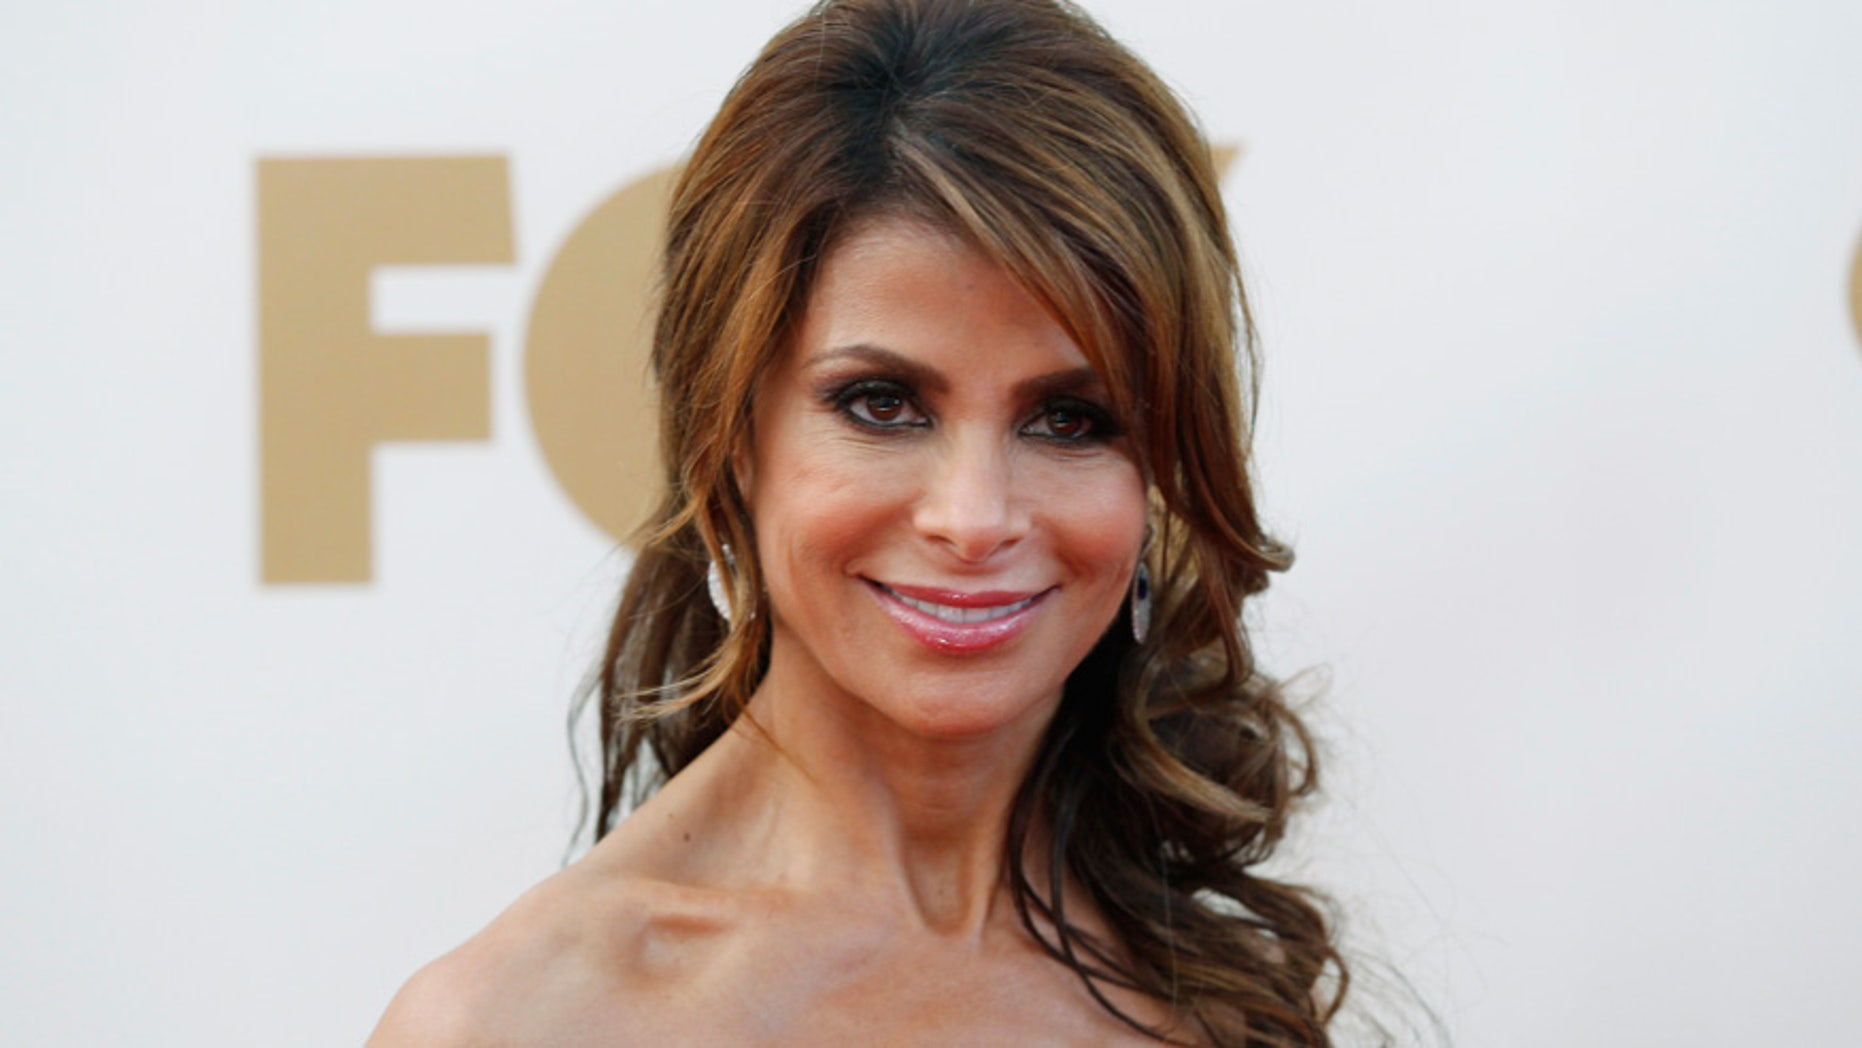 Paula Abdul falls head first off stage at United States  gig